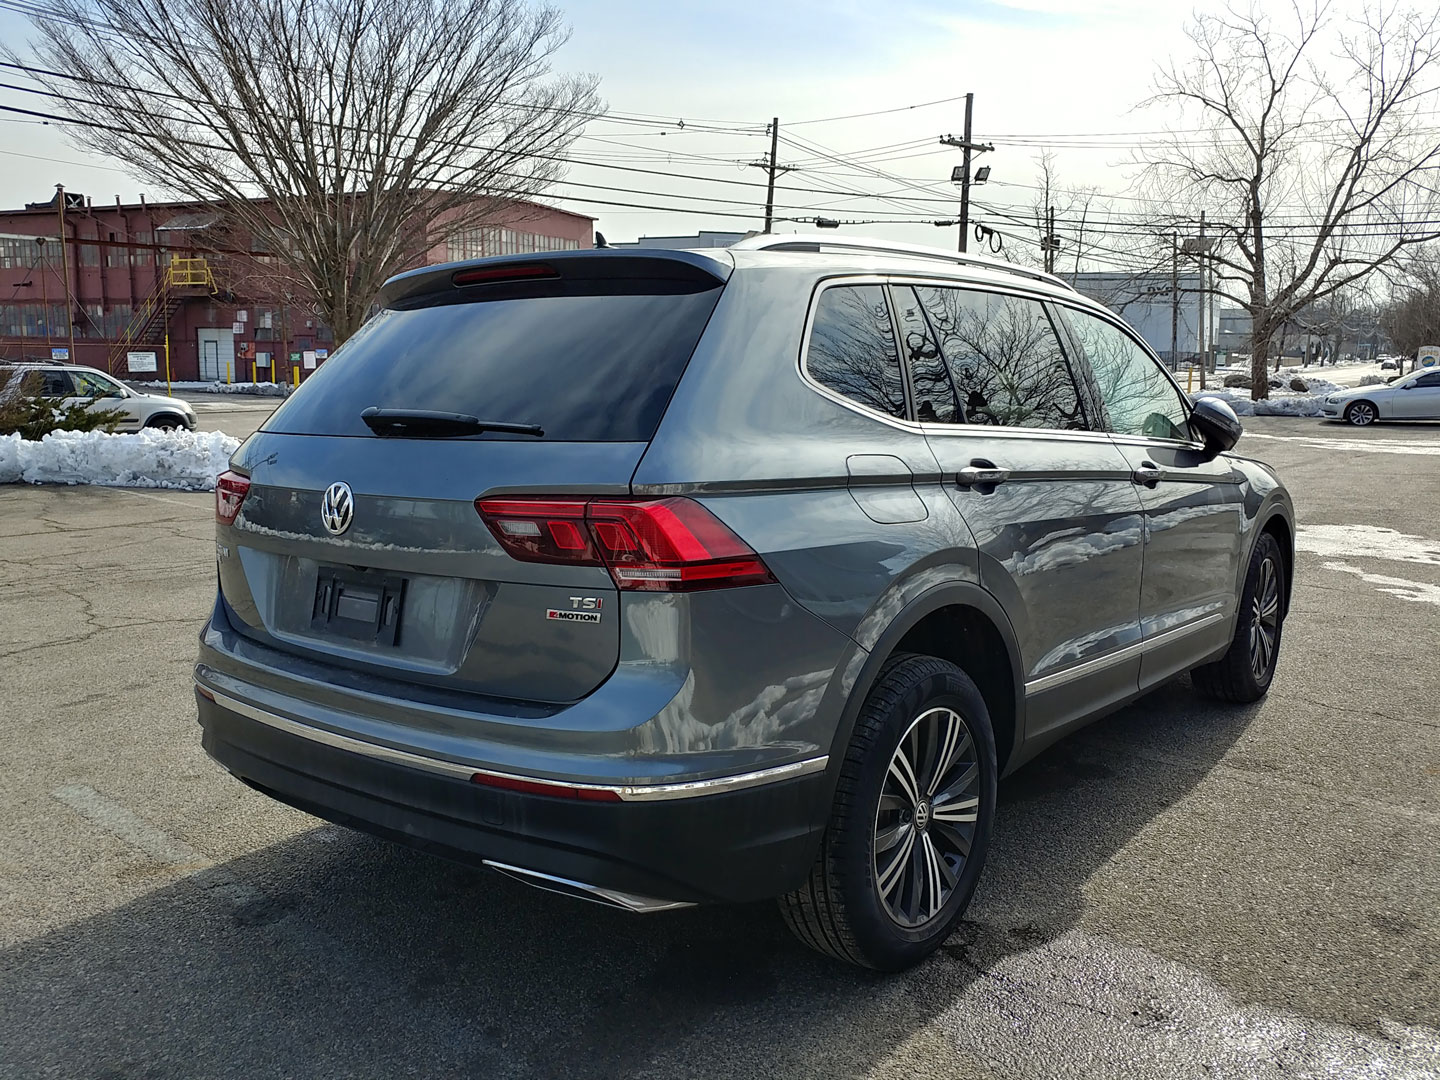 https://cdn2.hubspot.net/hubfs/347760/VW-Tiguan-salvage.jpg